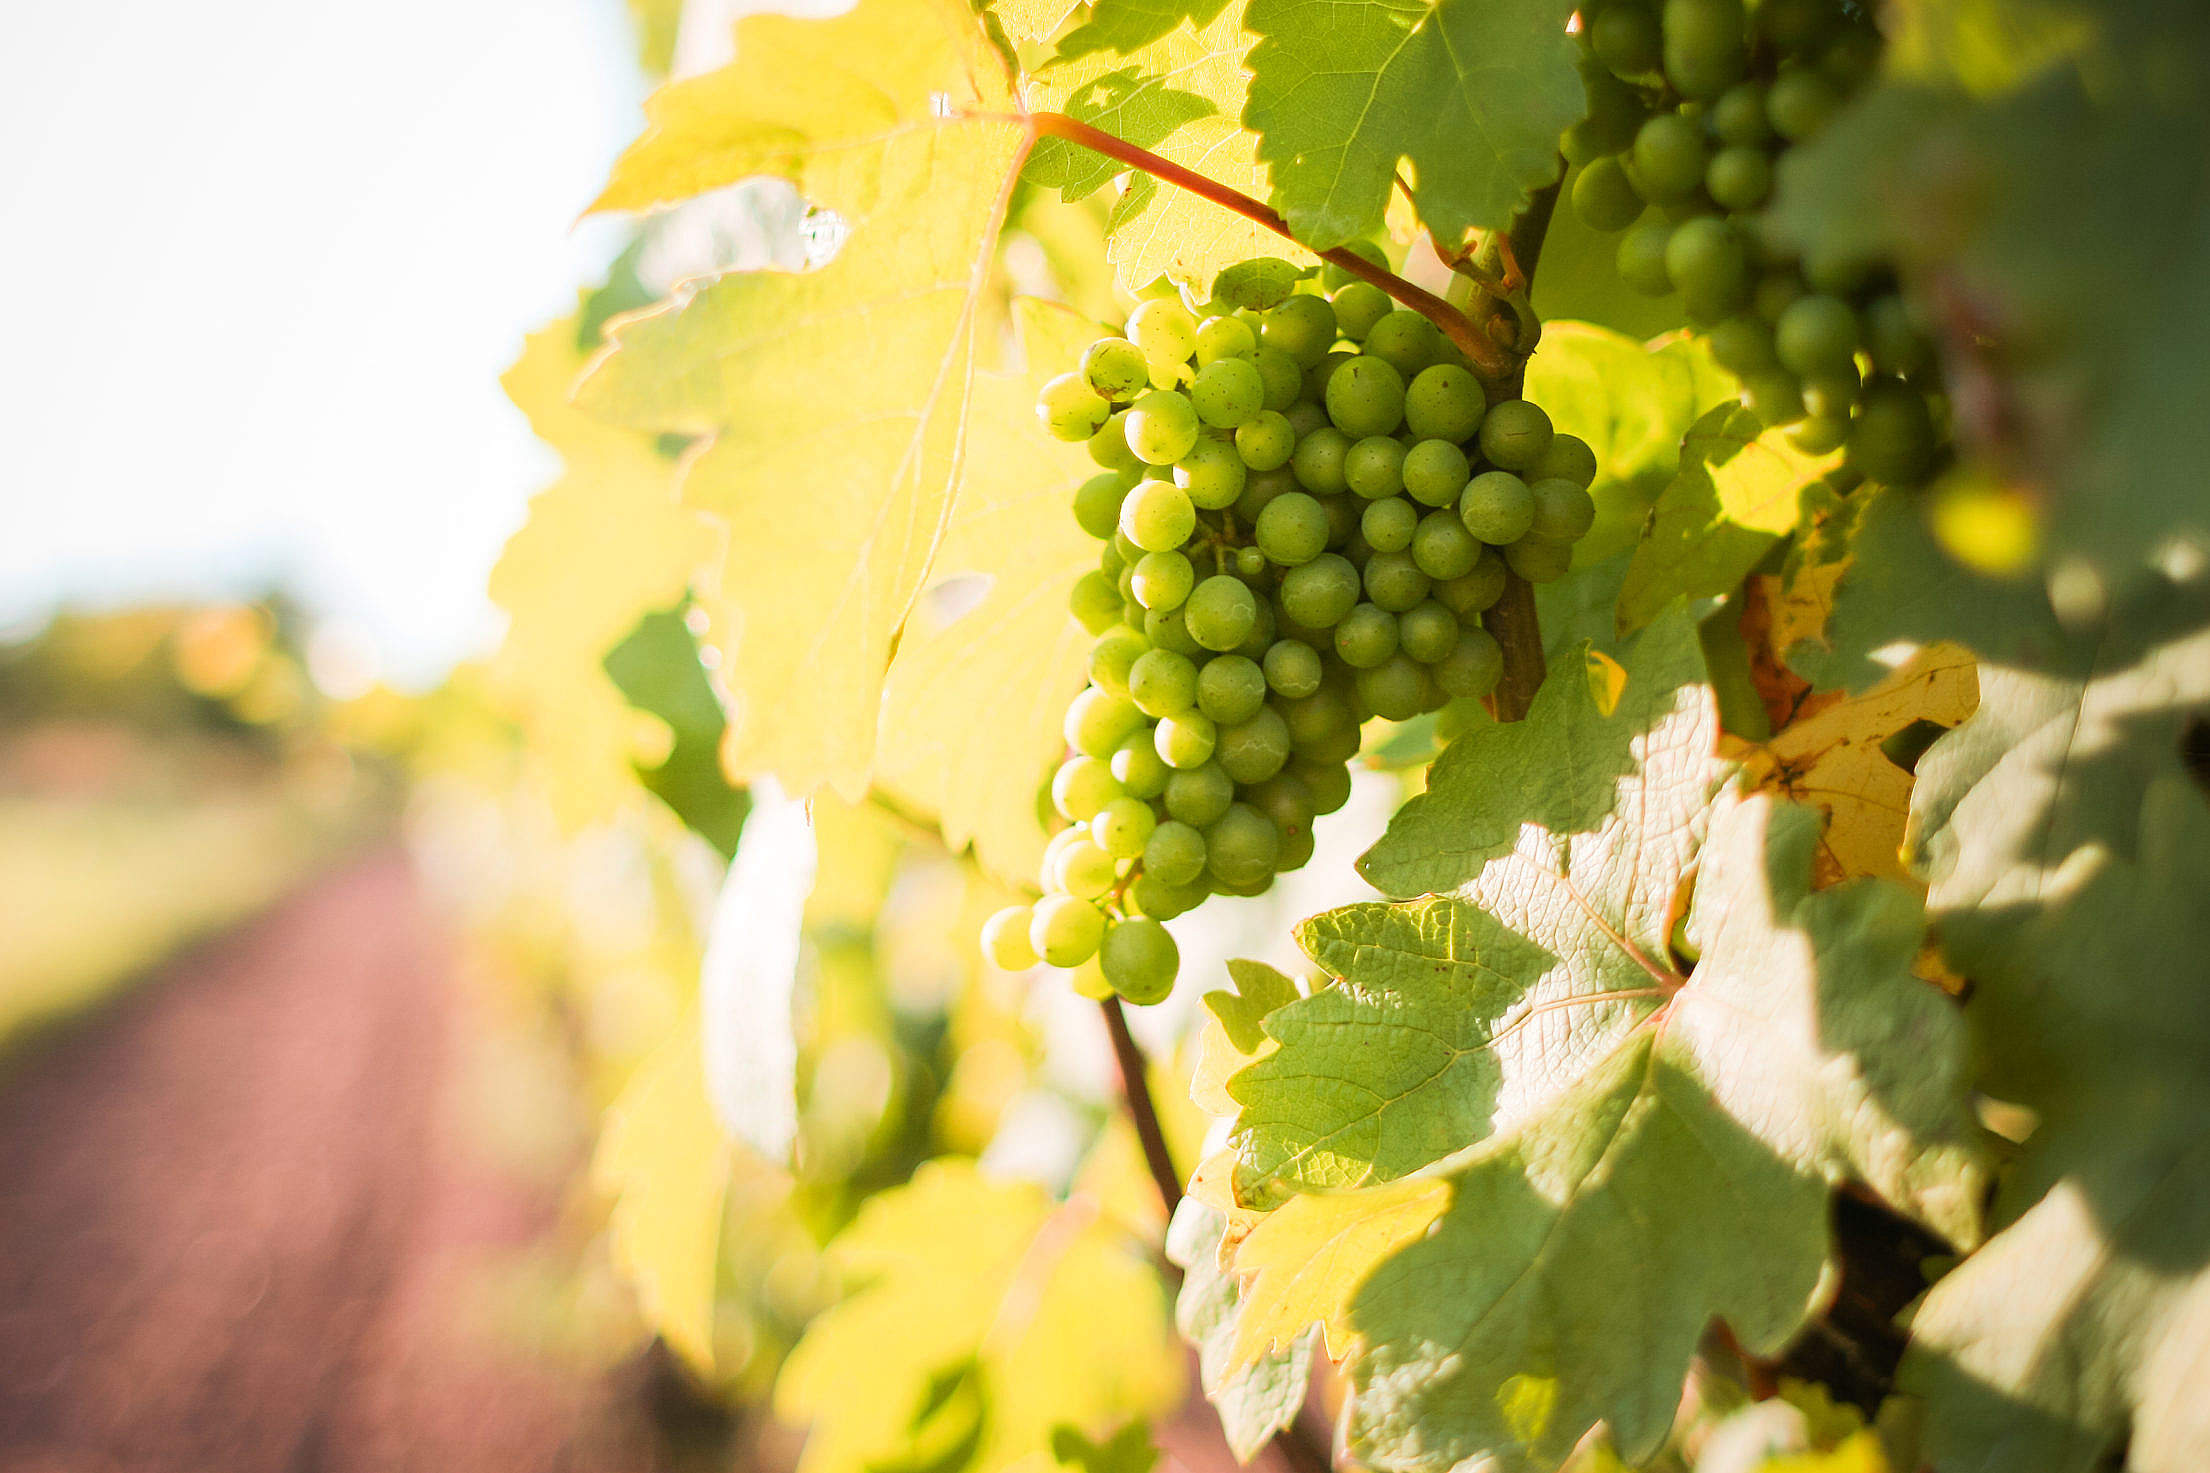 White Grapes Grapevine in a Vineyard Free Stock Photo